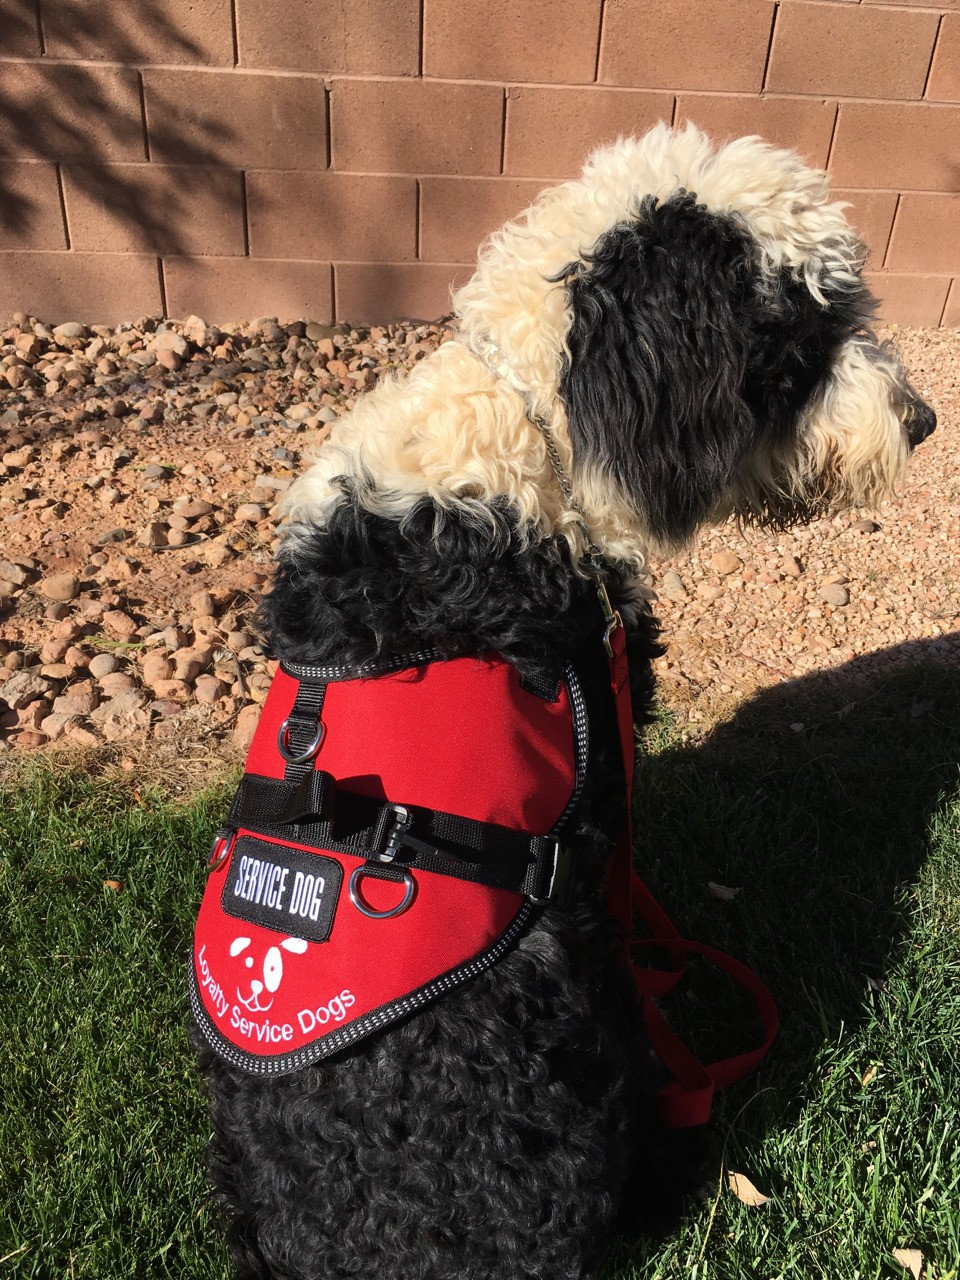 Sheepadoodle service dog in training Mr.Winston sending a few pictures to his boy Matty!